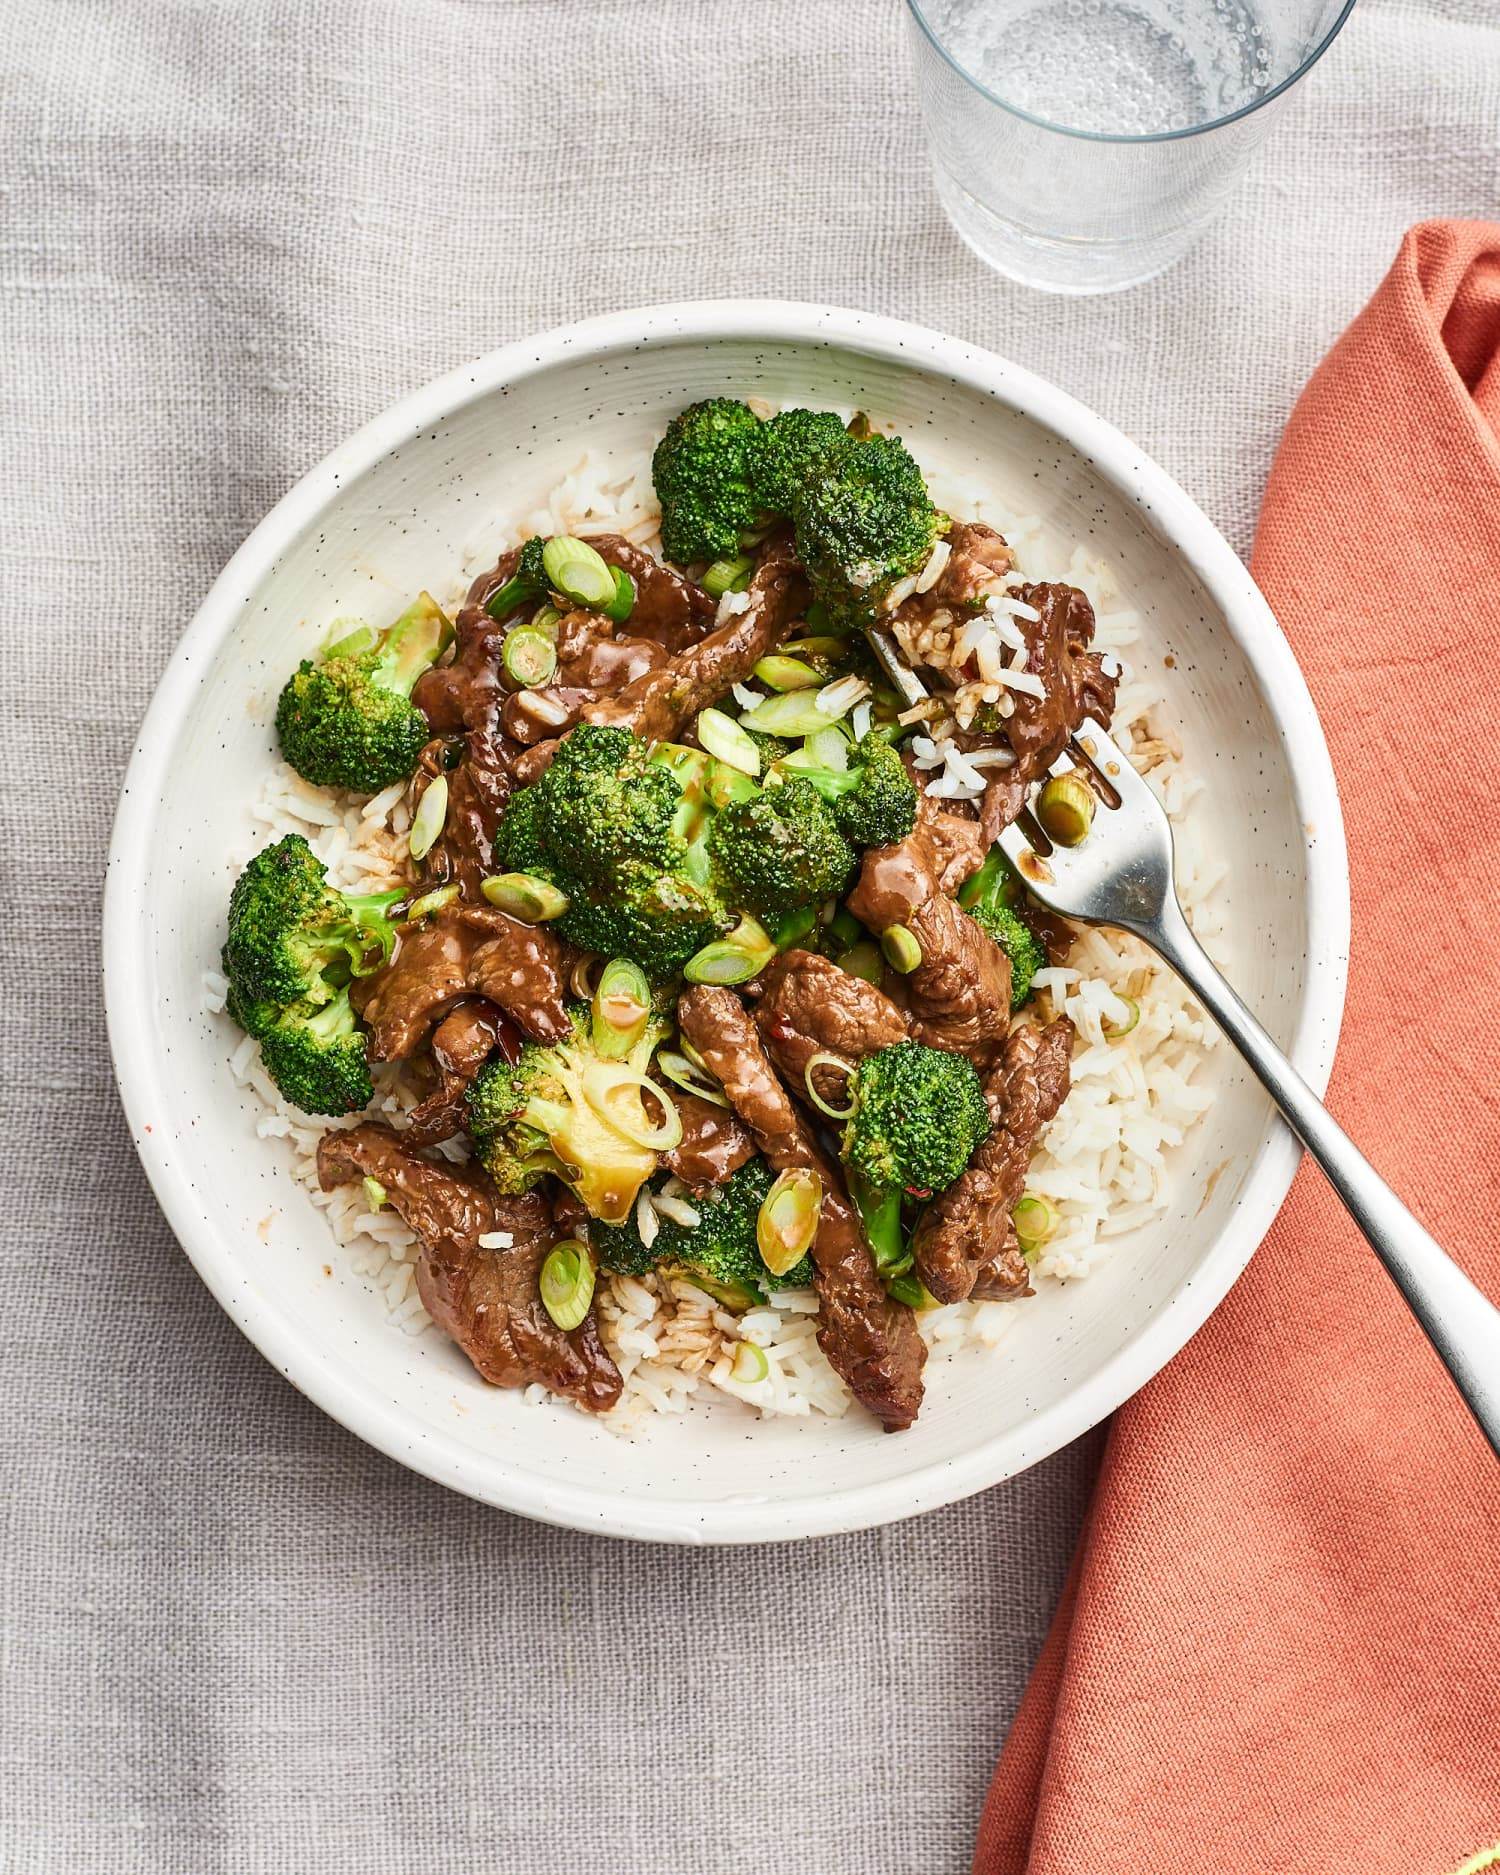 Recipe: Easy Takeout-Style Beef and Broccoli